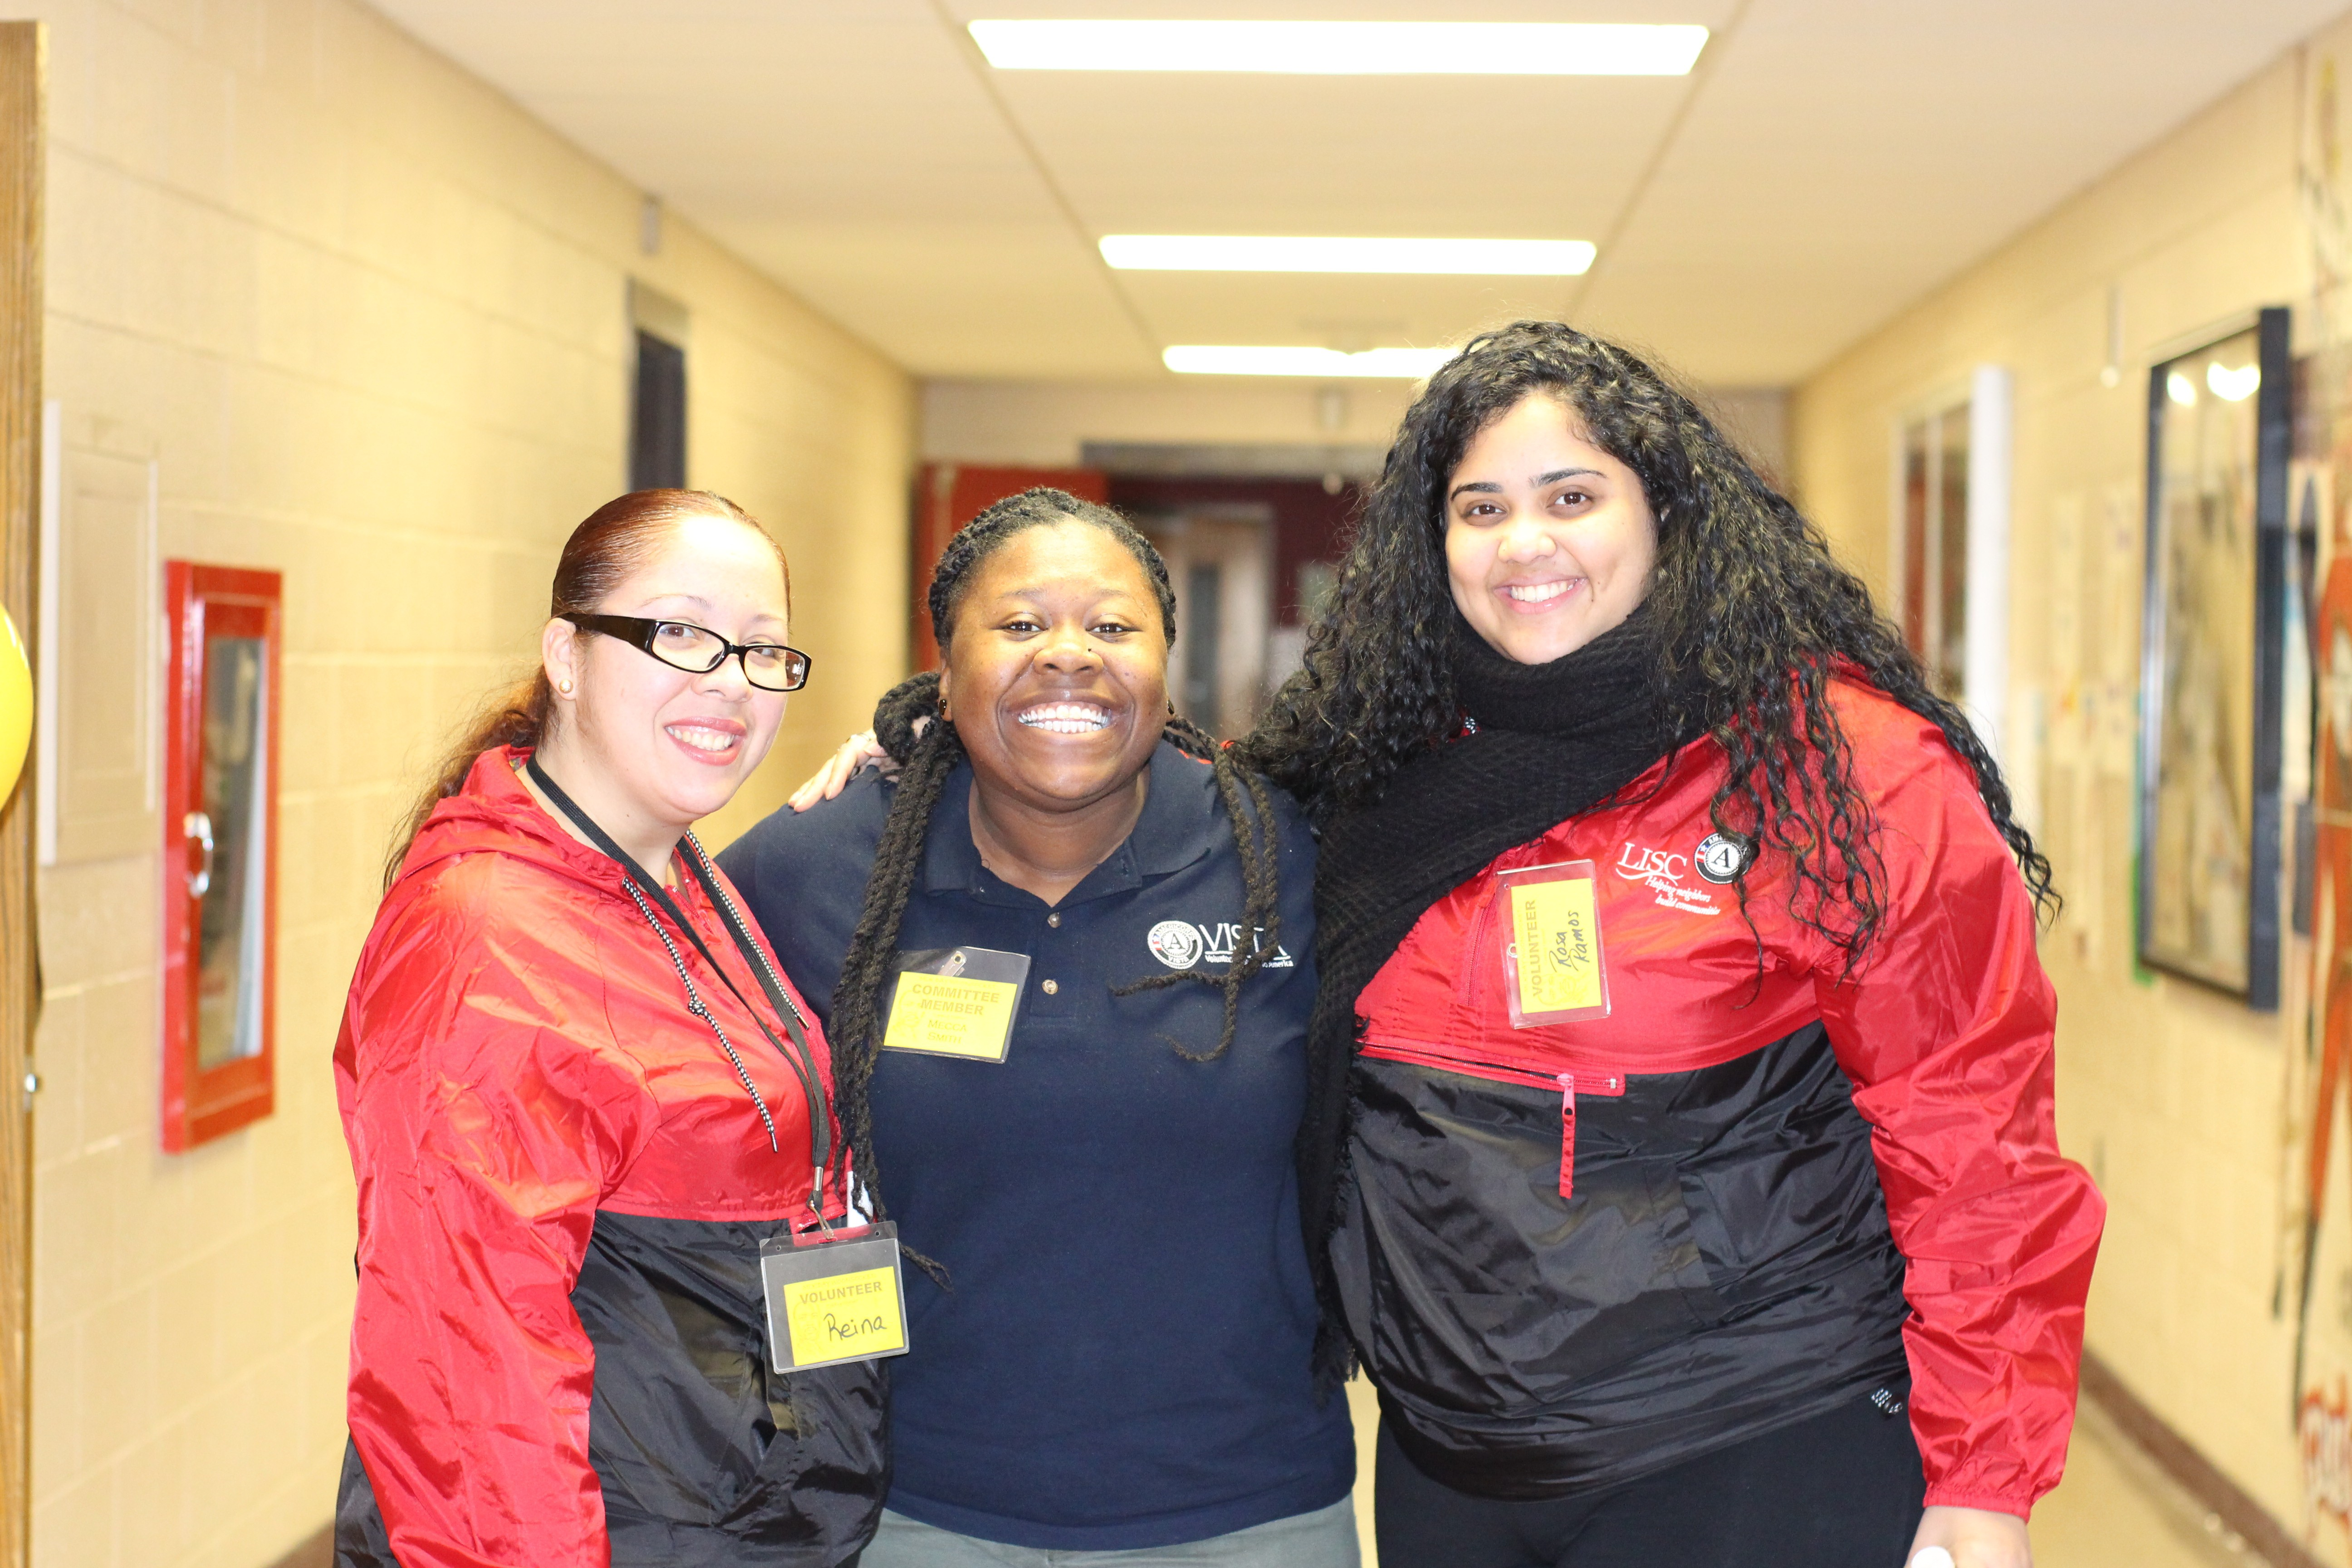 Mecca and Lisc Americorps